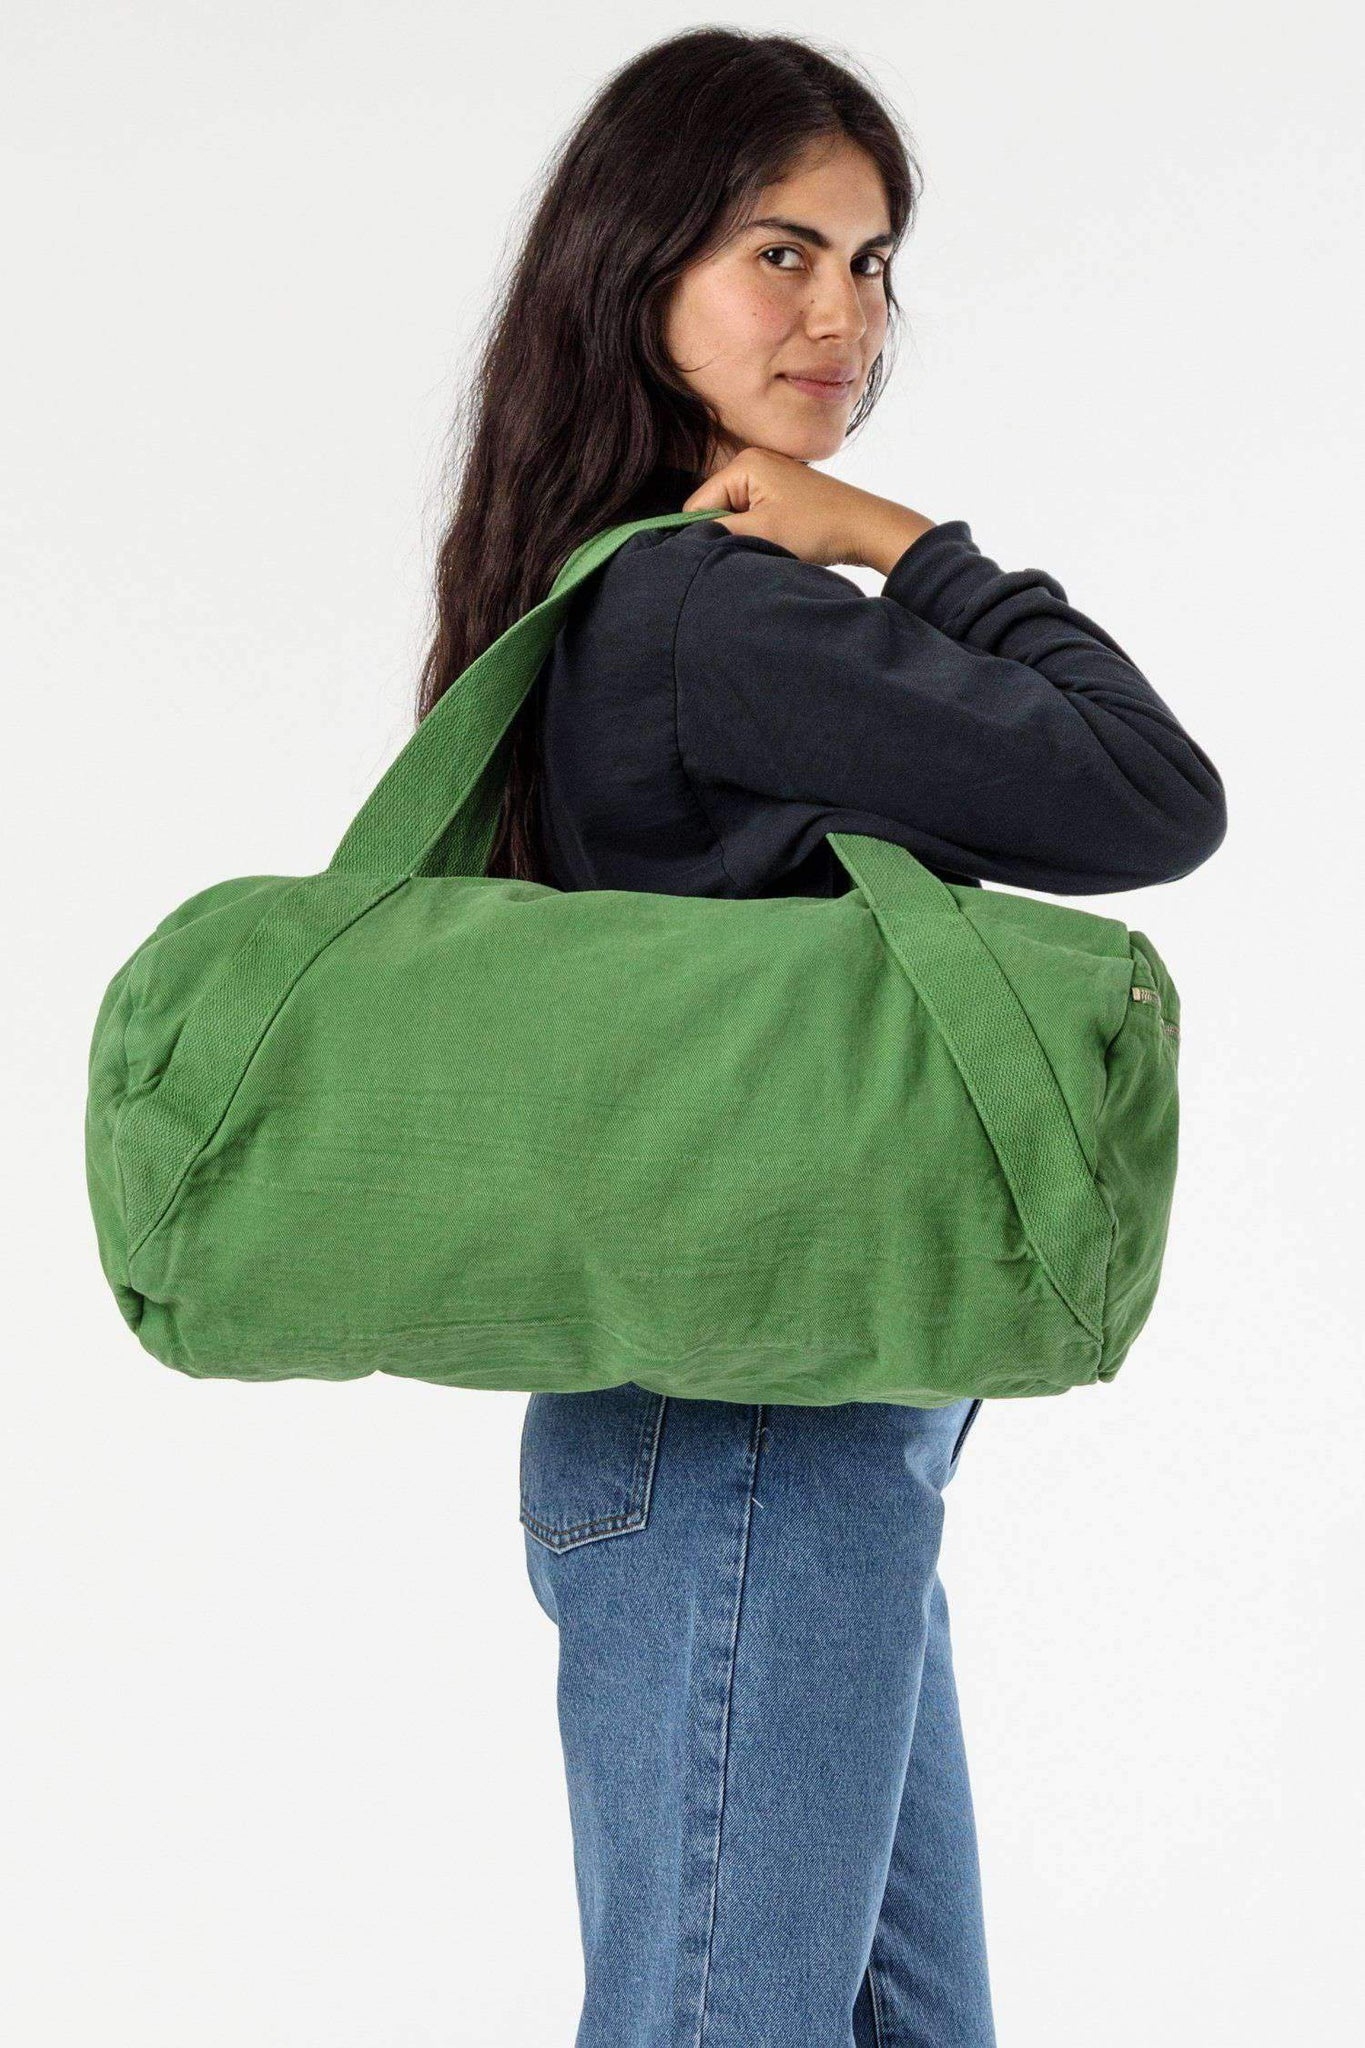 BD04 - Bull Denim Diagonal Strap Gym Bag Bags Los Angeles Apparel Vintage Green